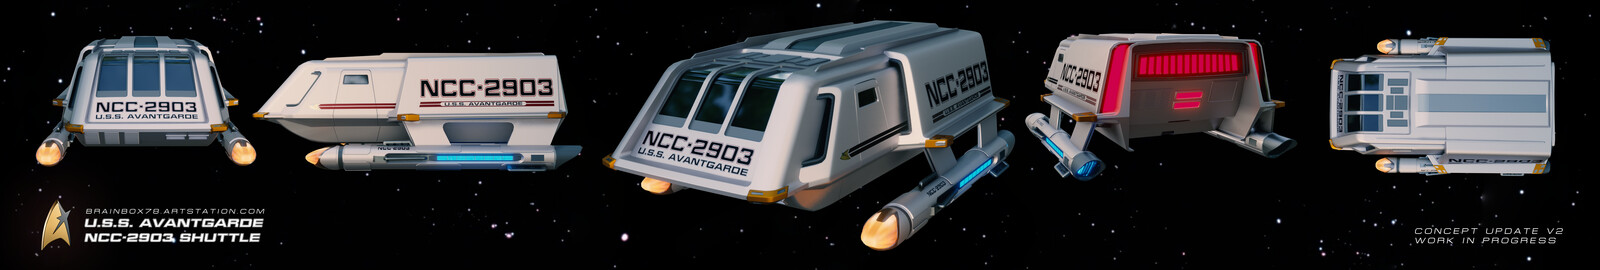 Avantgarde Shuttle Update V2